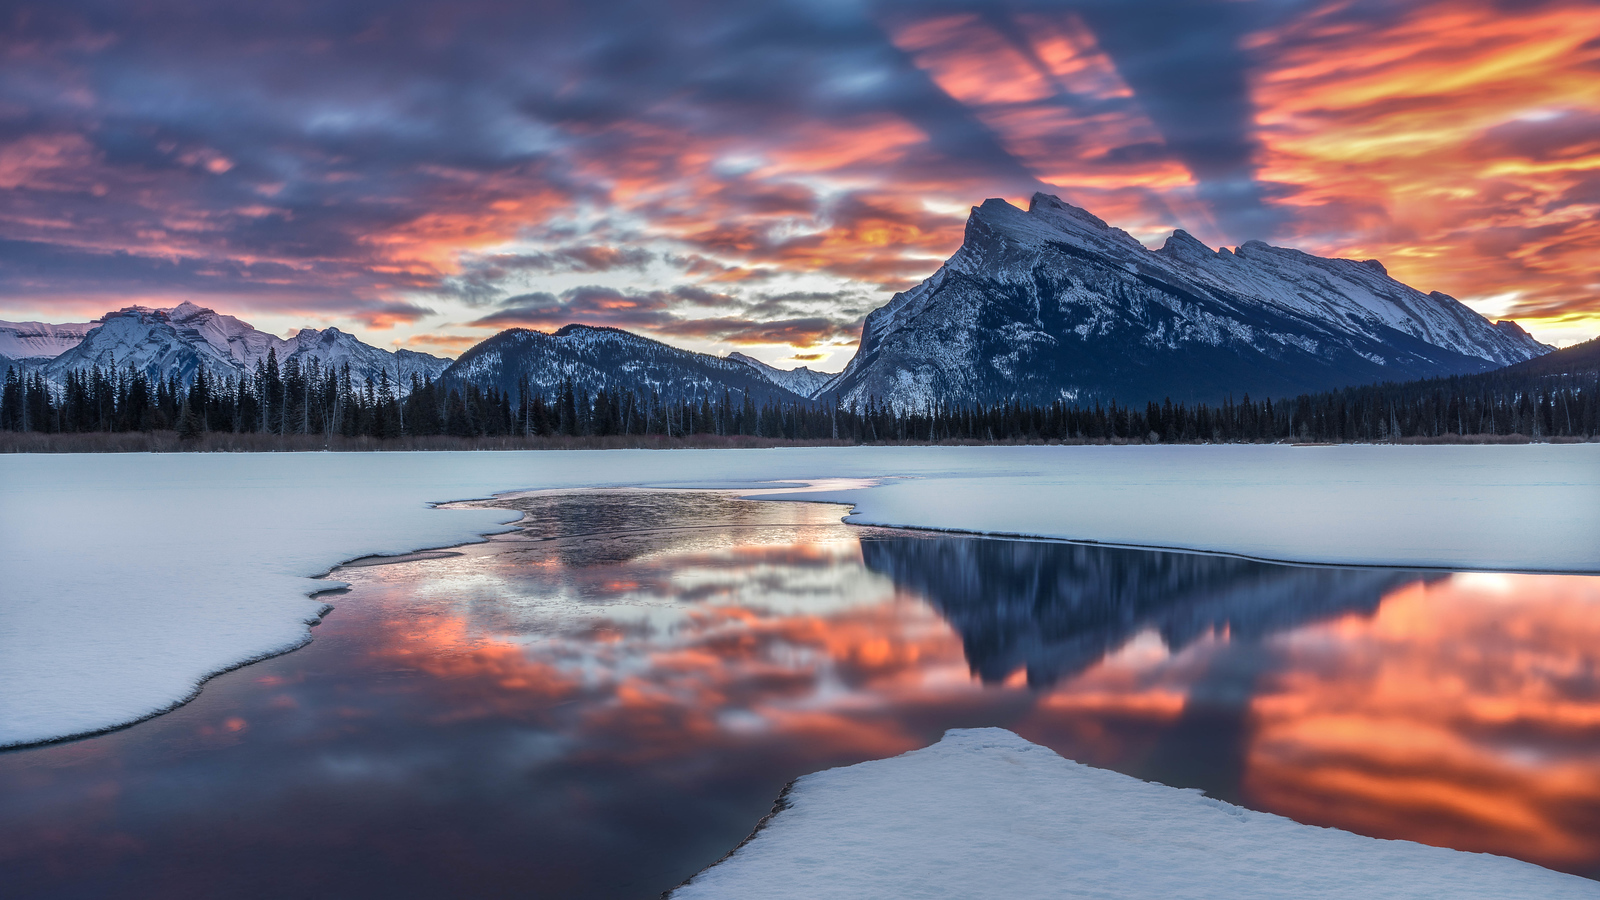 Sunrise over Mount Rundle in Banff National Park, Alberta